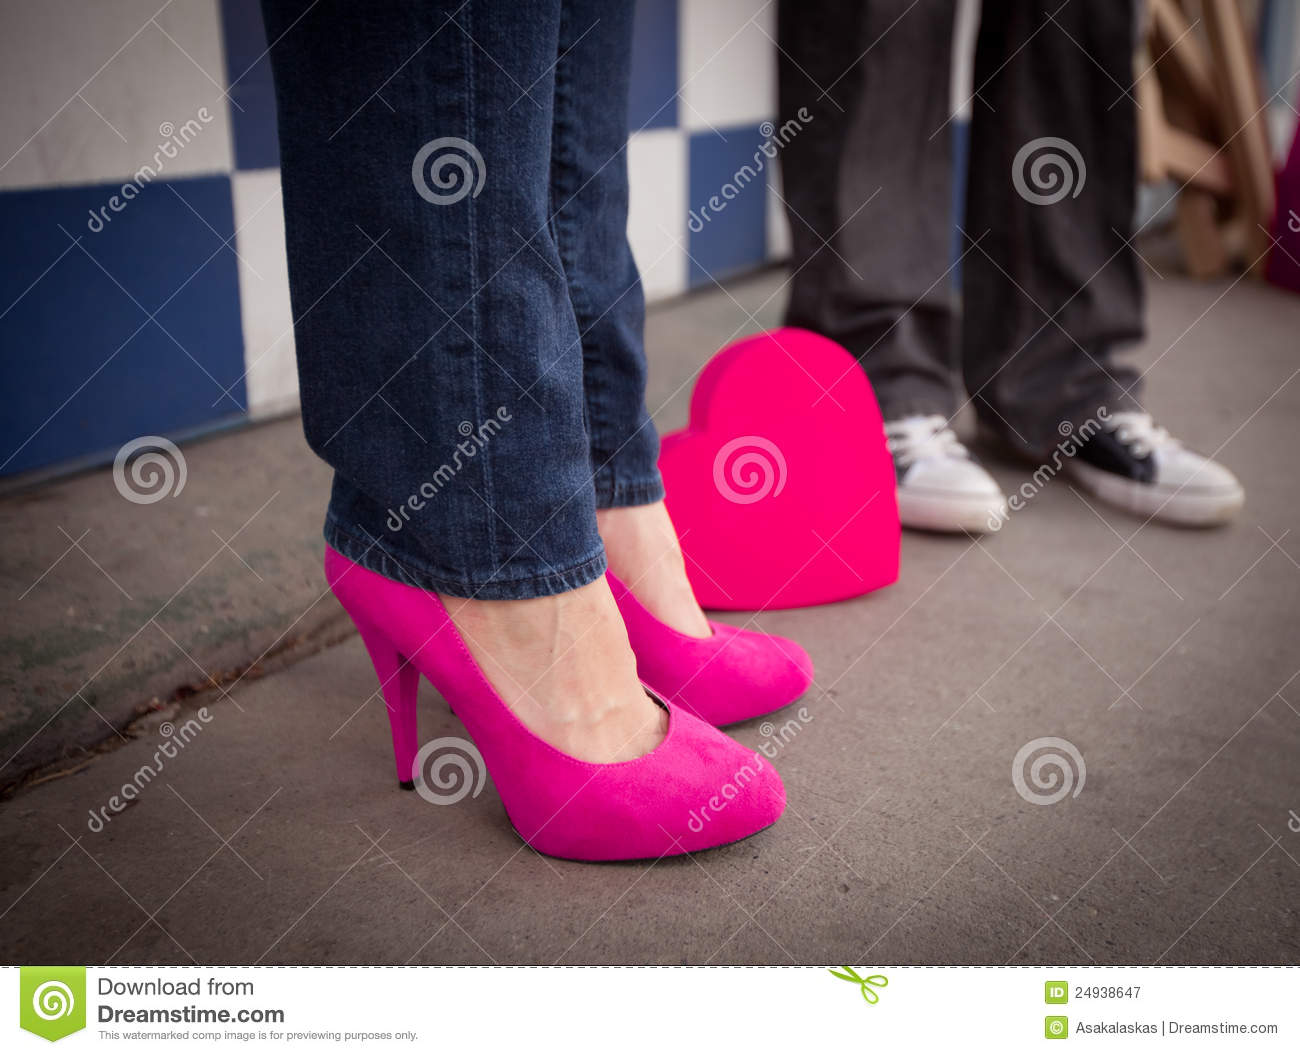 Woman With Pink Heels And Man In Black Chucks Royalty Free Stock ...